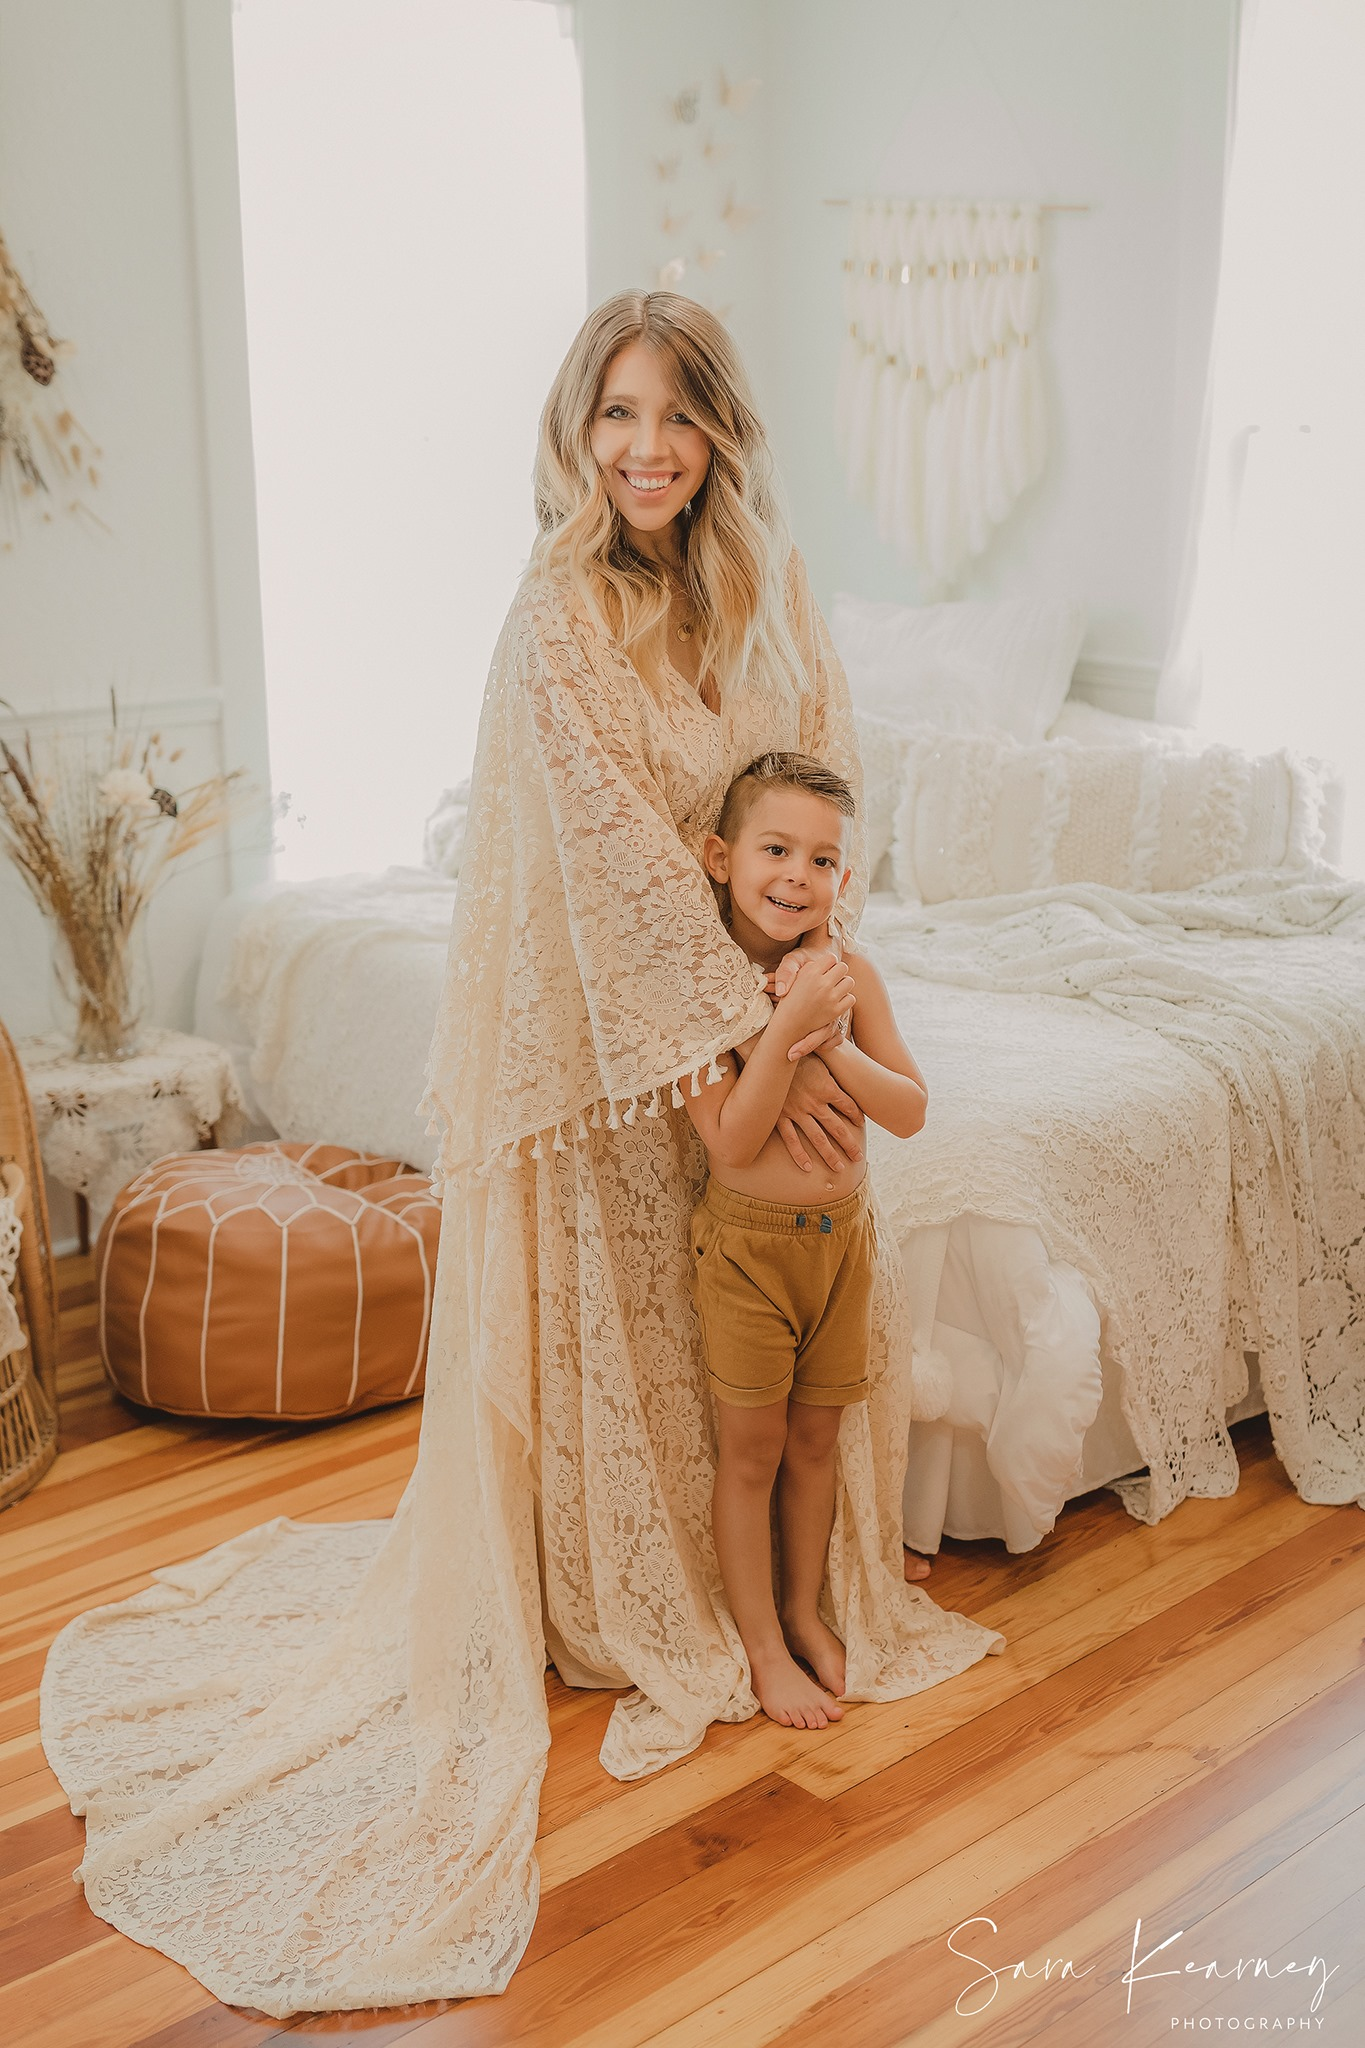 Boho Photo Shoot!! Mommy photoshoot | Sara Kearney Orlando Photographer 9